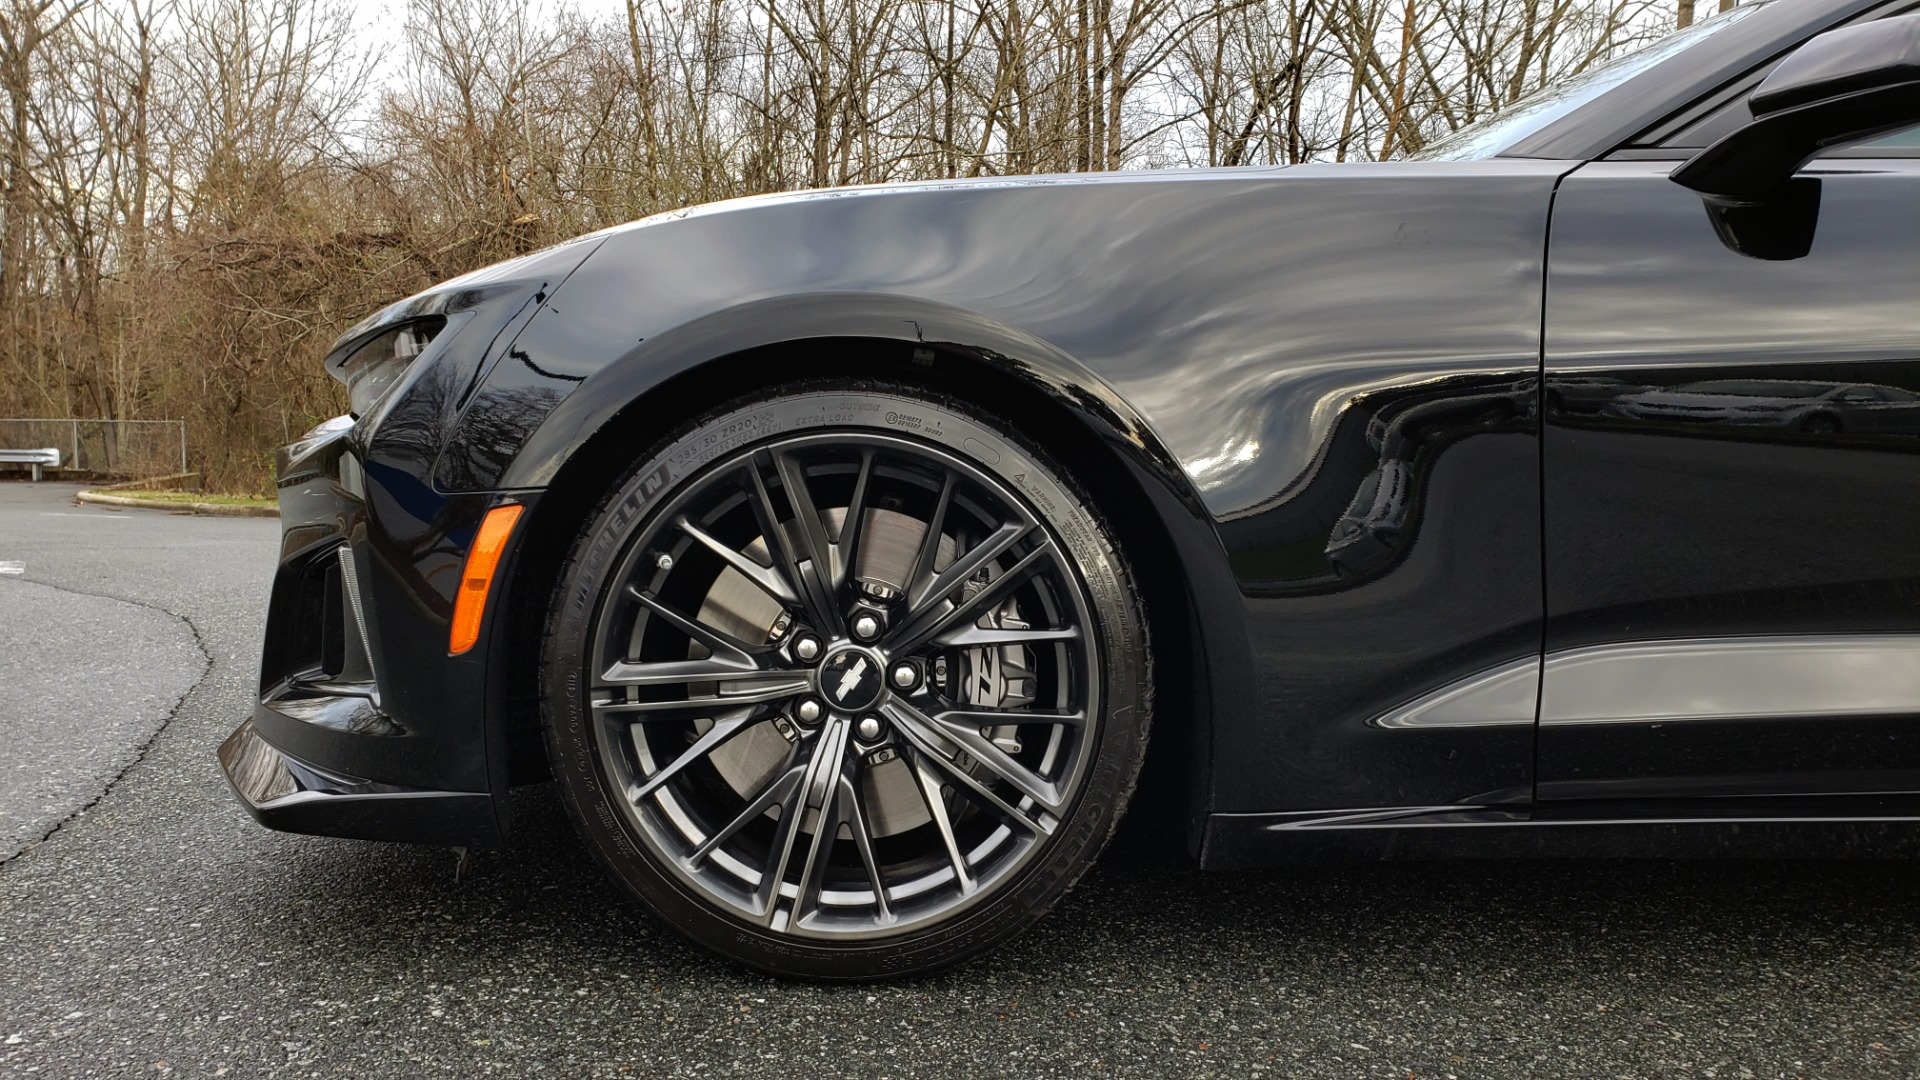 Used 2018 Chevrolet CAMARO ZL1 6.2L SUPERCHARGED V8 650 / NAV / SUNROOF / REARVIEW for sale Sold at Formula Imports in Charlotte NC 28227 85